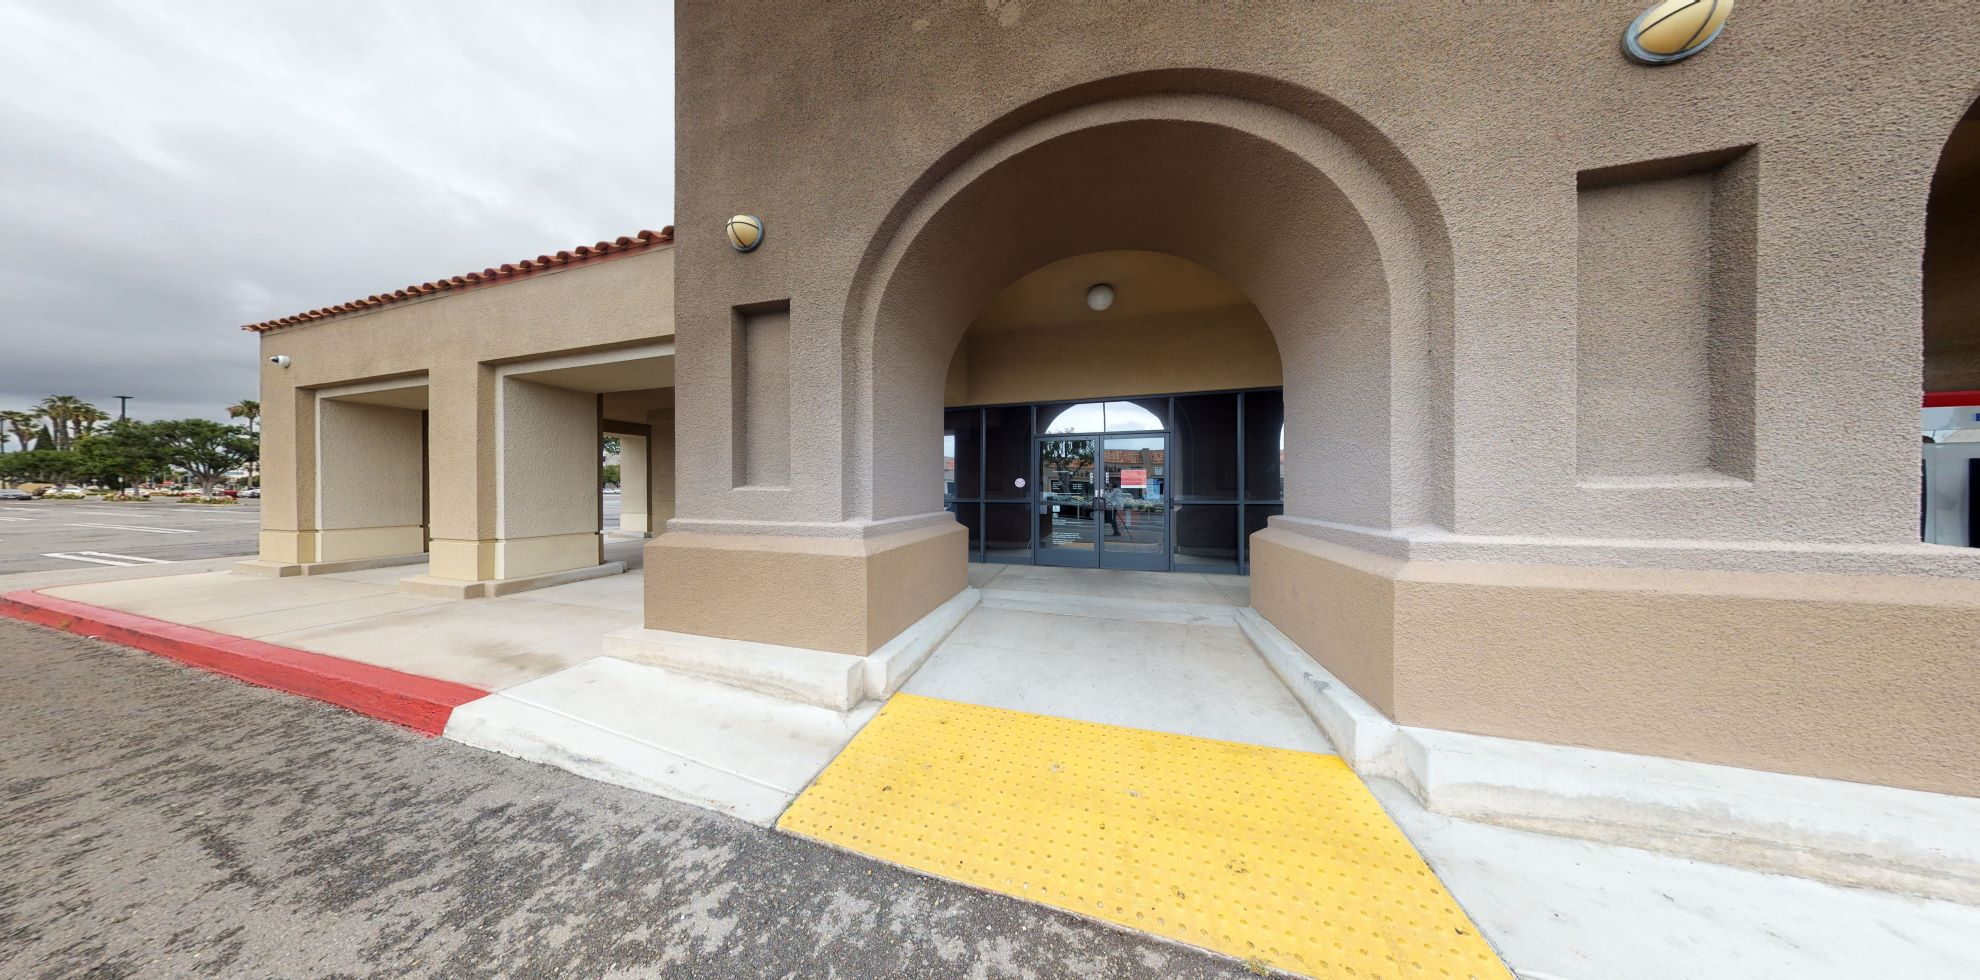 Bank of America financial center with drive-thru ATM | 945 S Brookhurst St, Anaheim, CA 92804